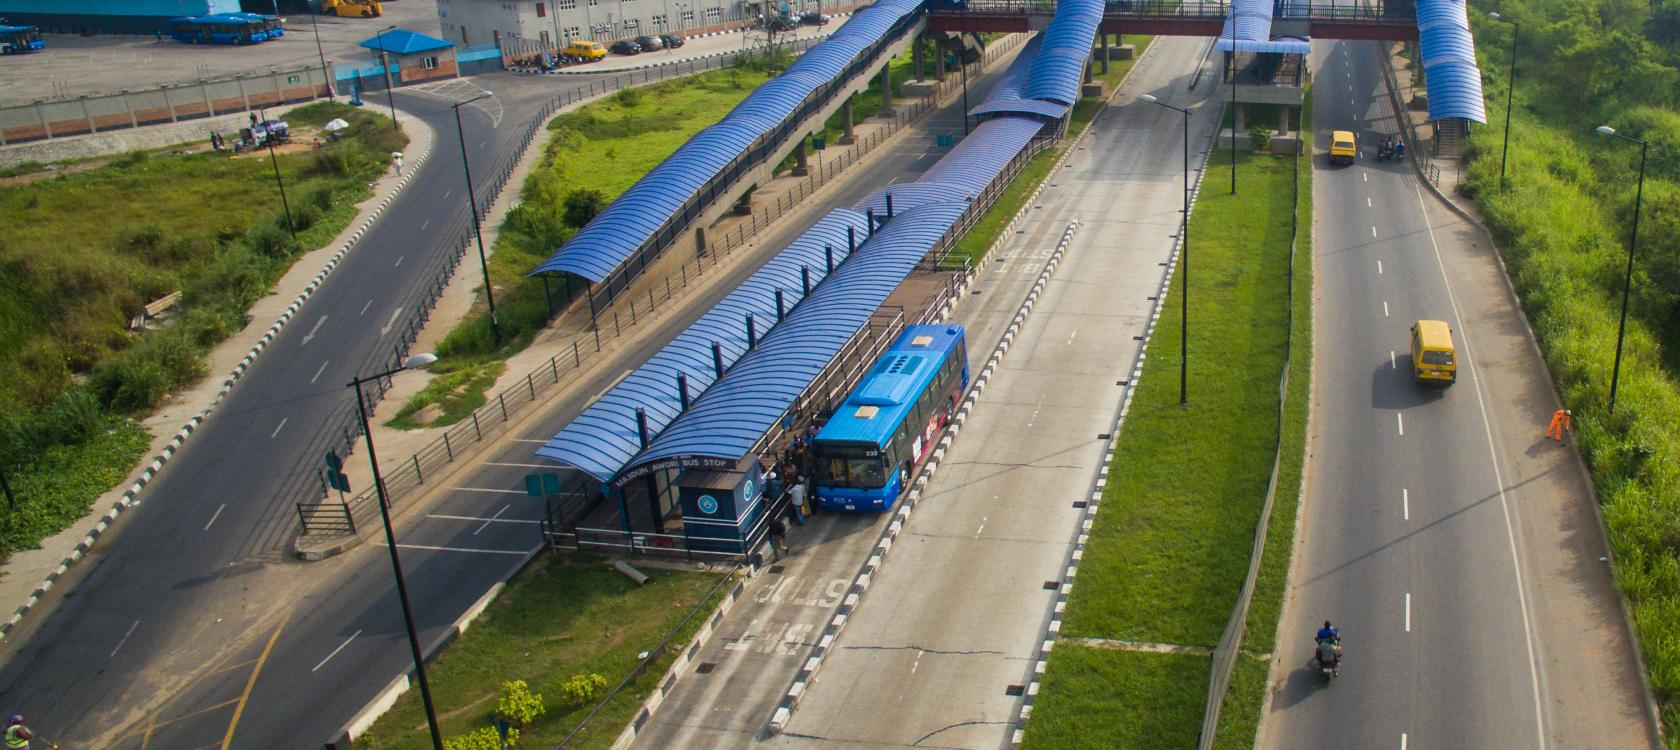 bus, Lagos, Nigeria, highway, transports, urban plan